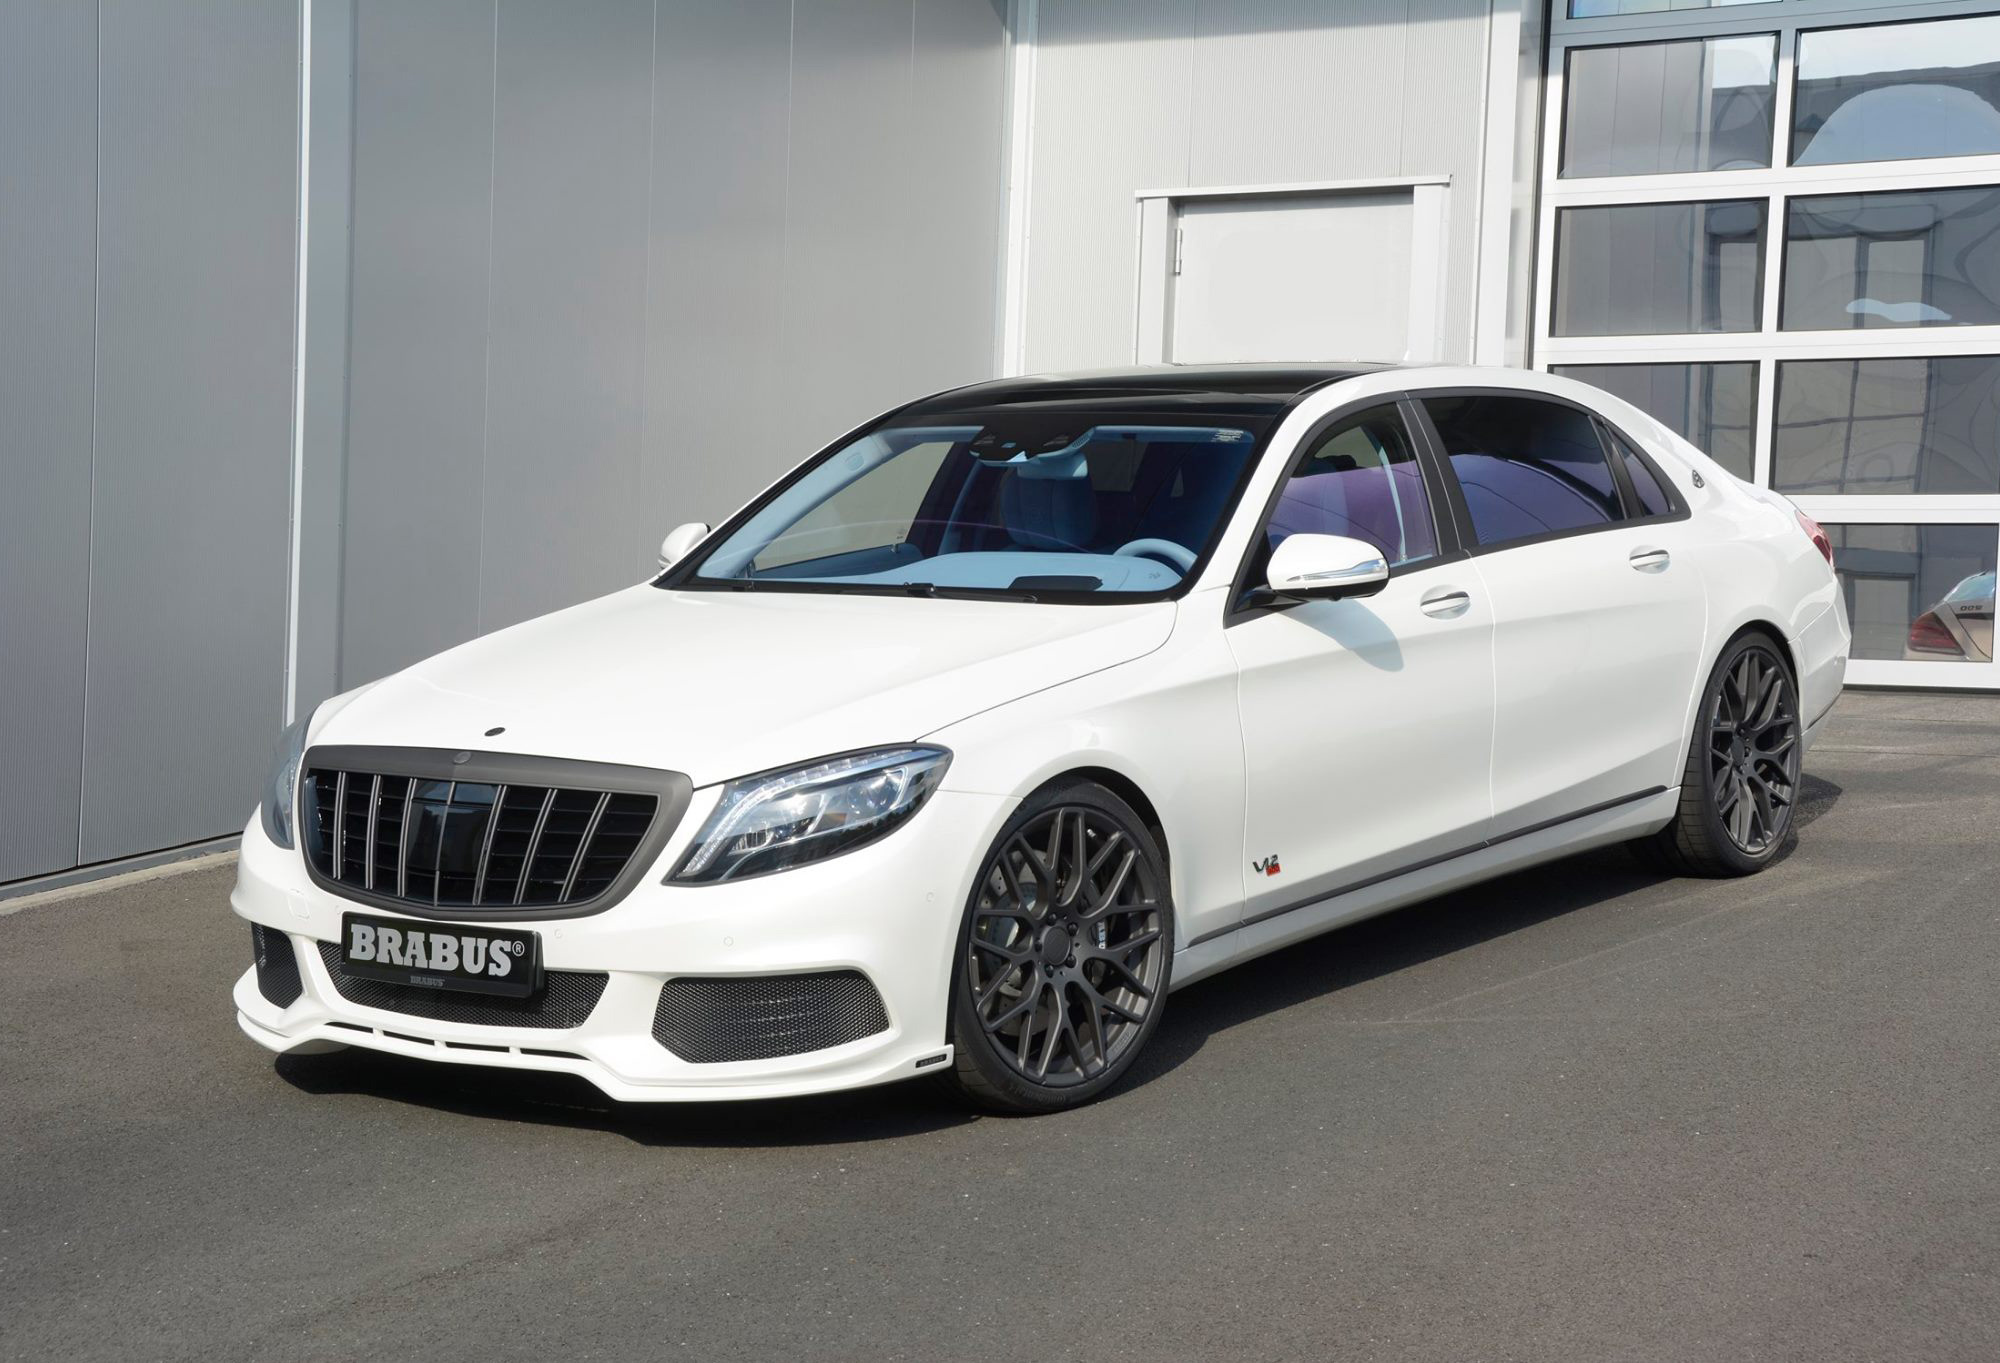 Brabus Maybach Rocket 900